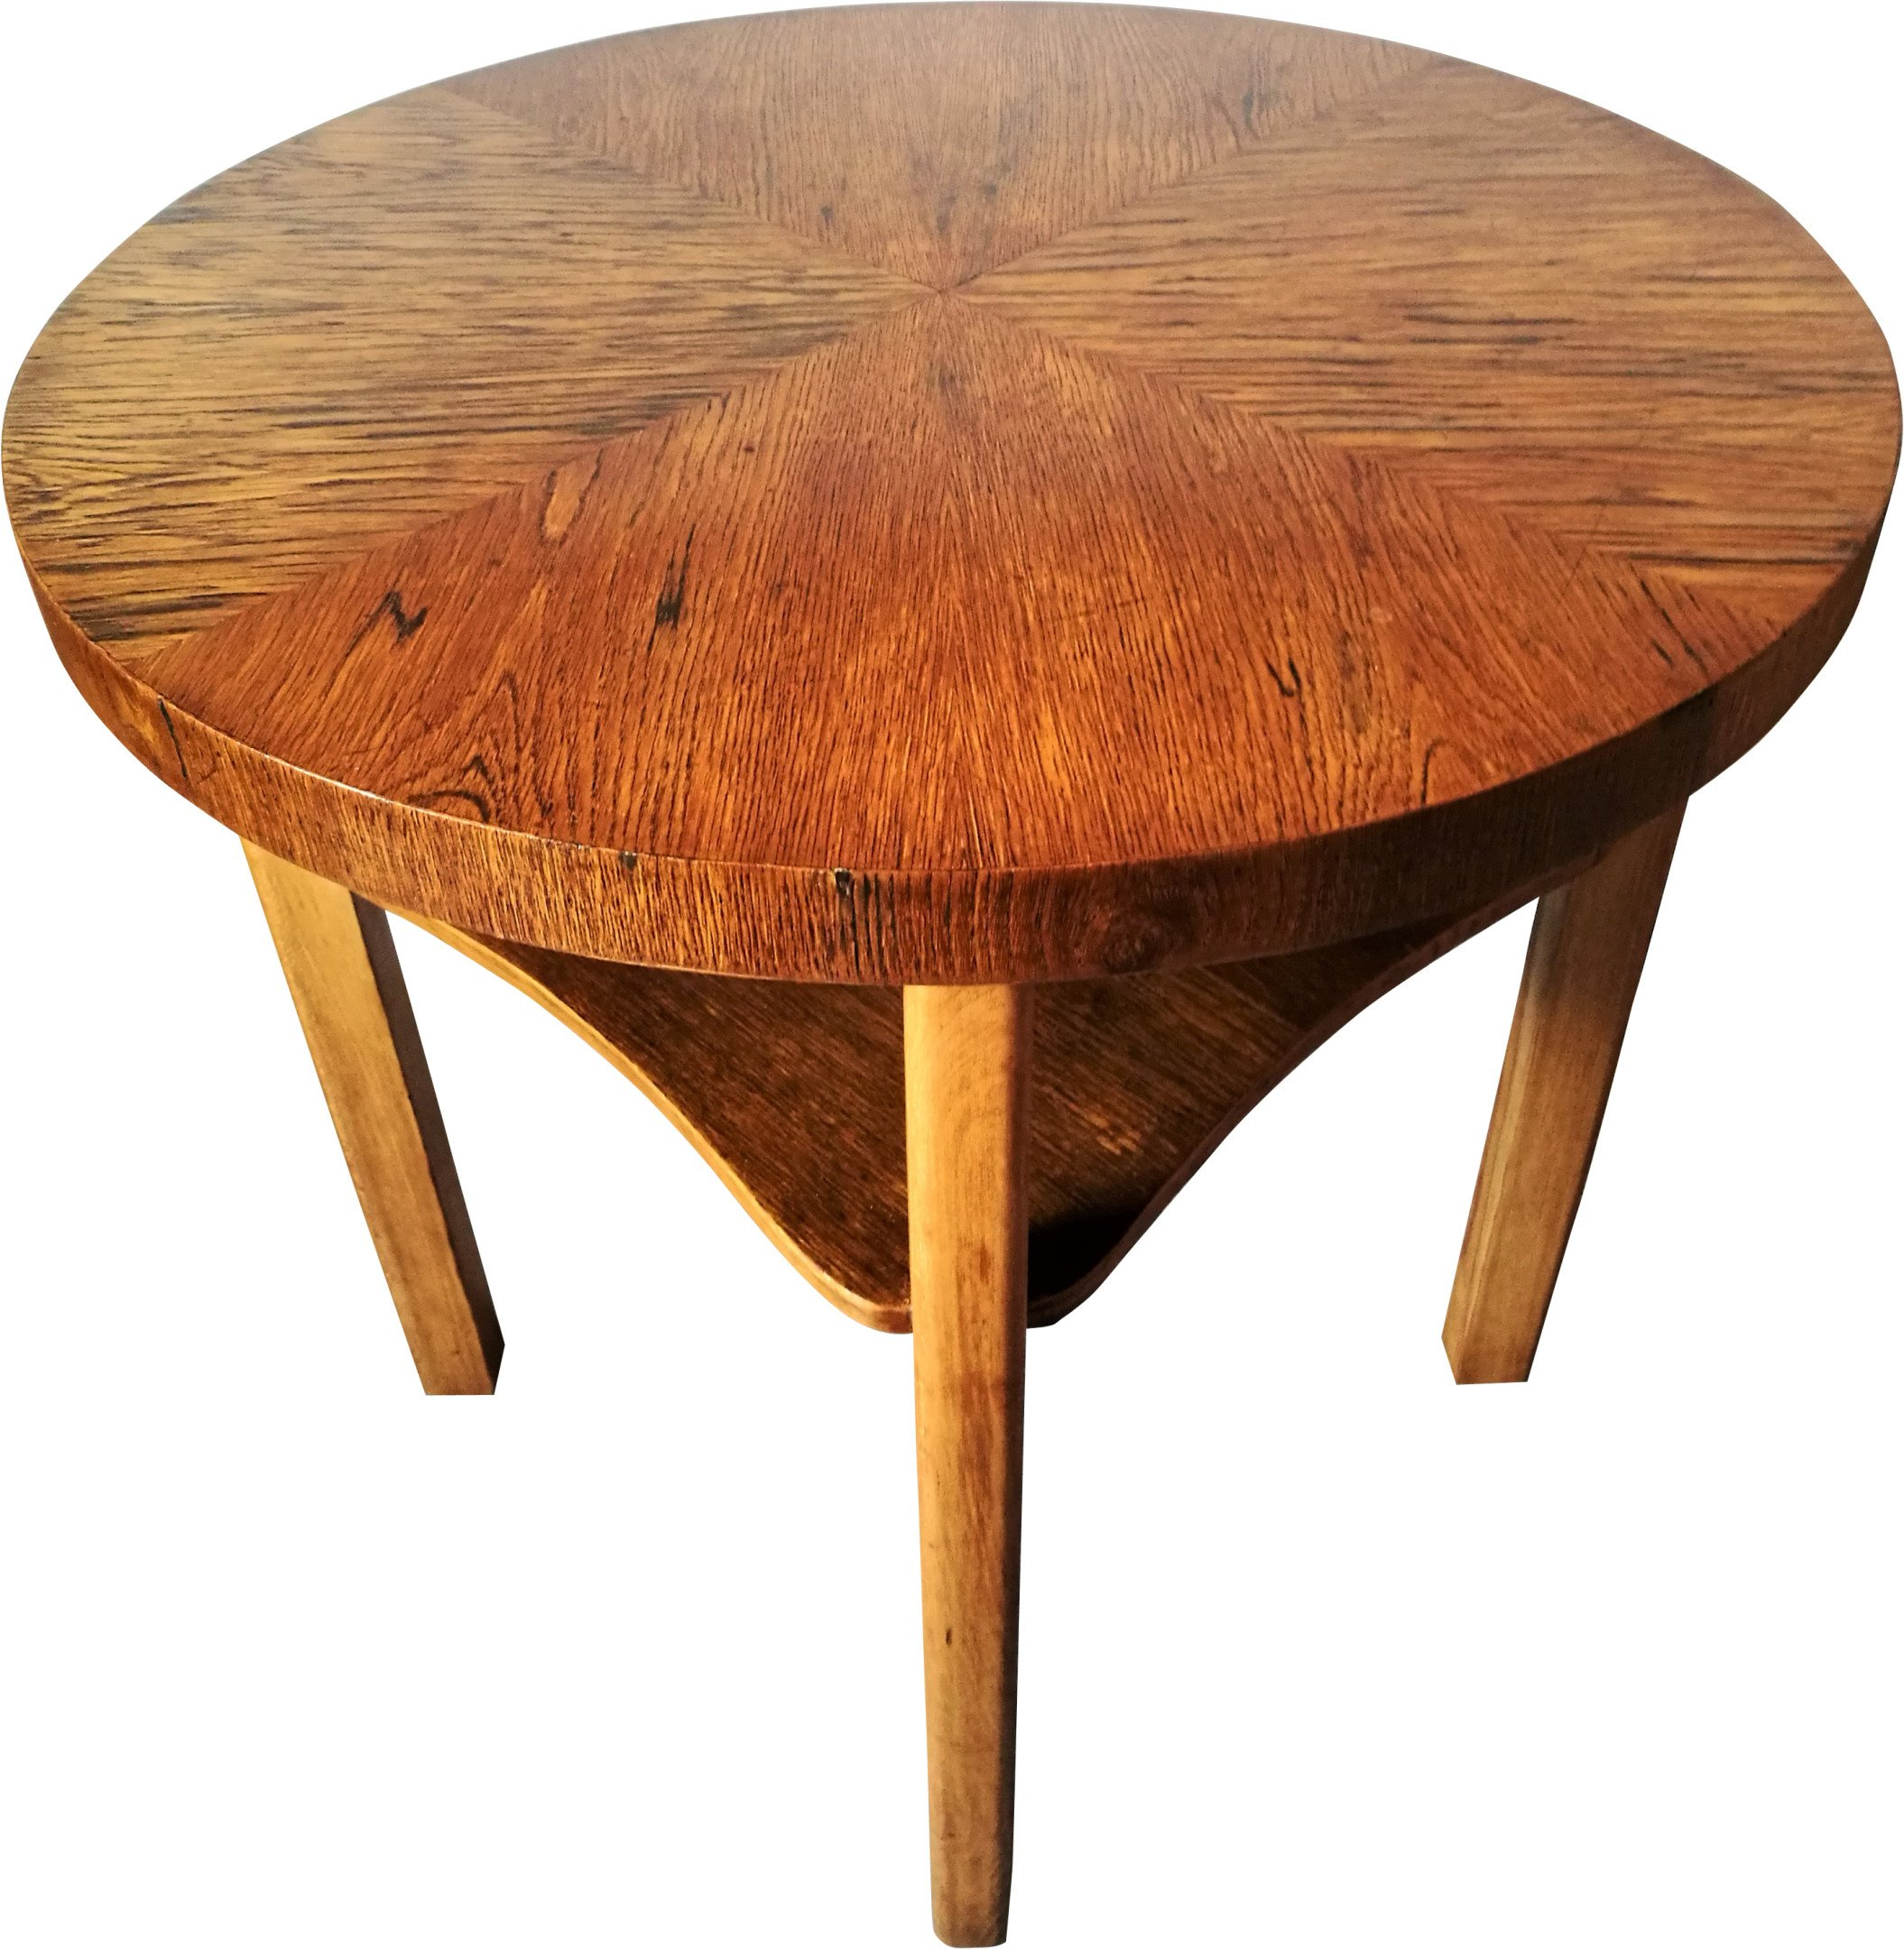 Table, 1st half of 20th C.